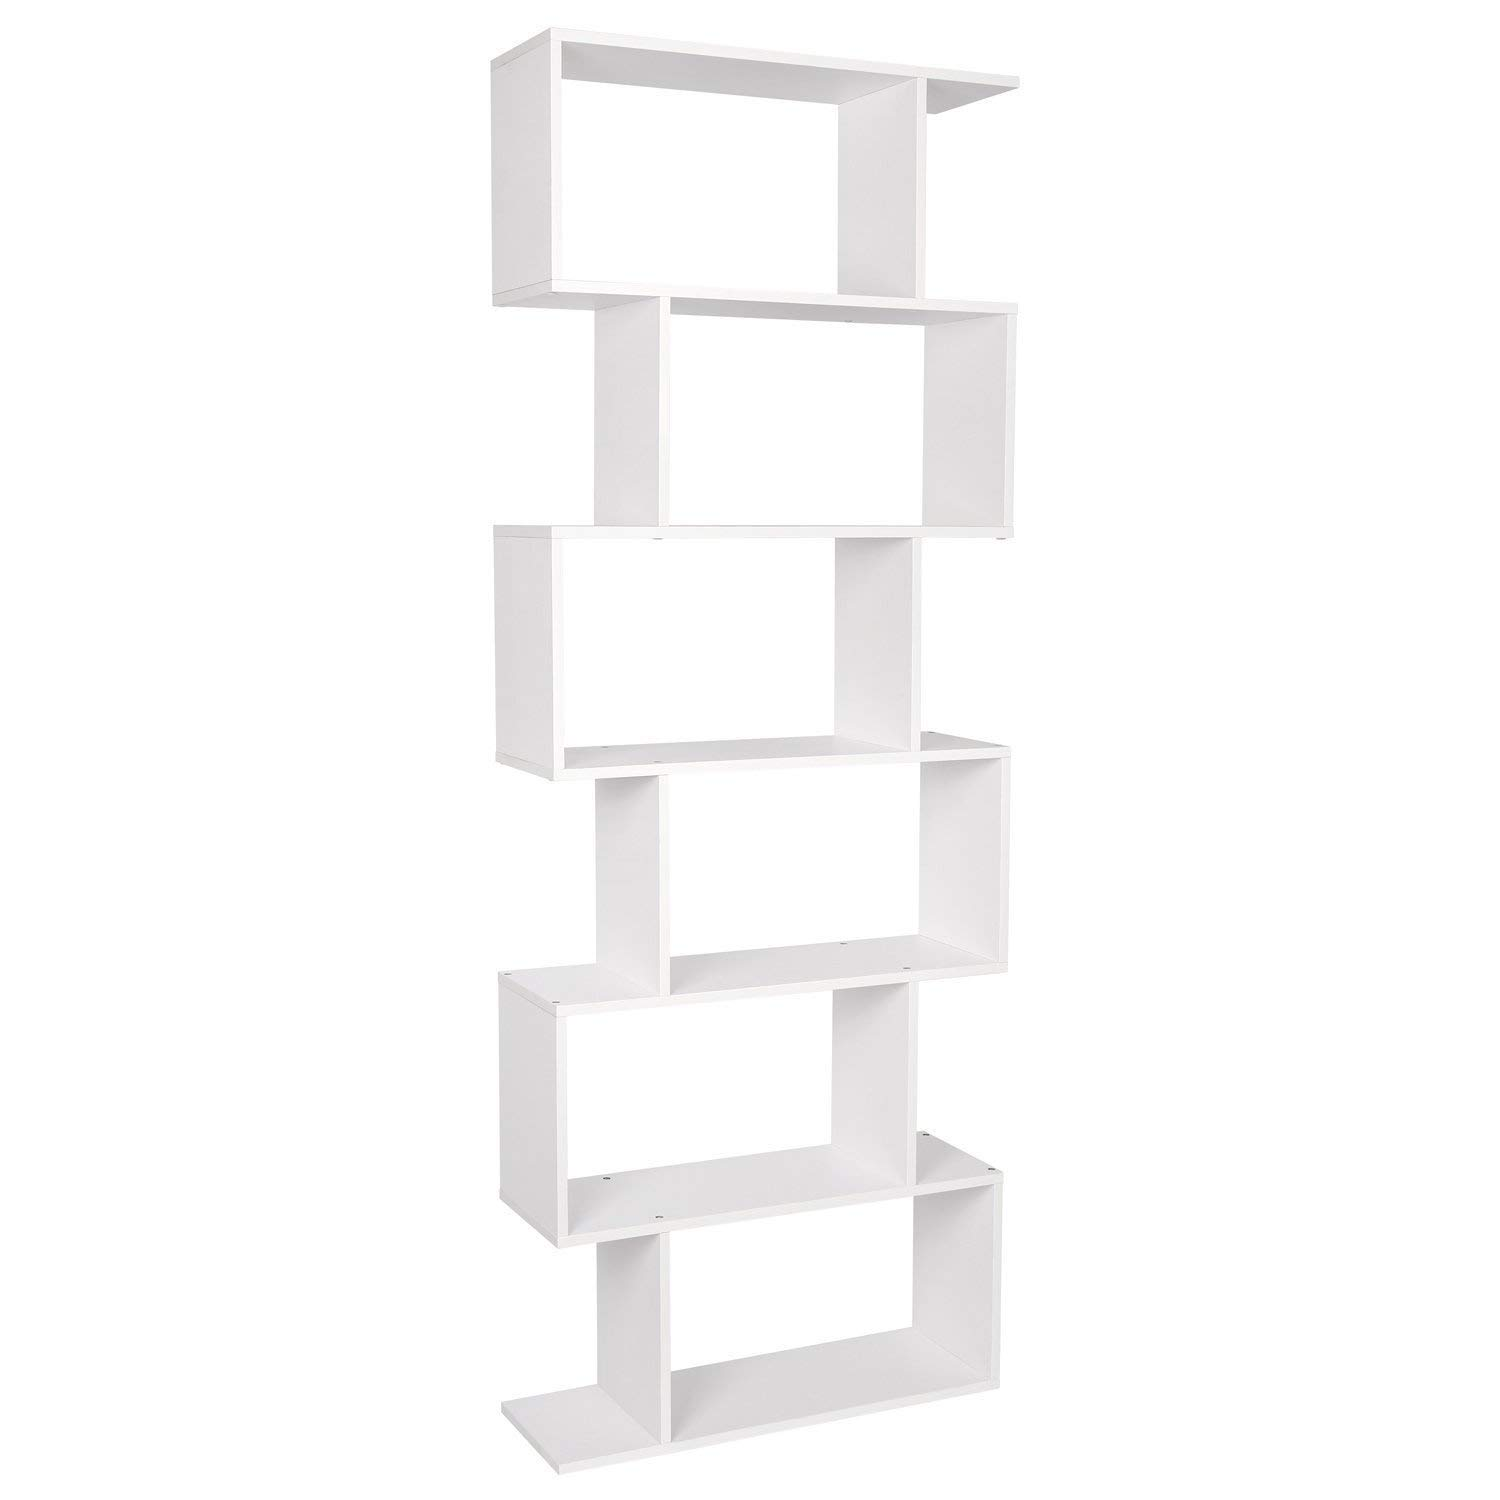 Homfa Wood Bookcase 6 Tier Shelves S Shape Bookshelf Free Standing Shelving Storage Display Unit for Living Room (Black) HF